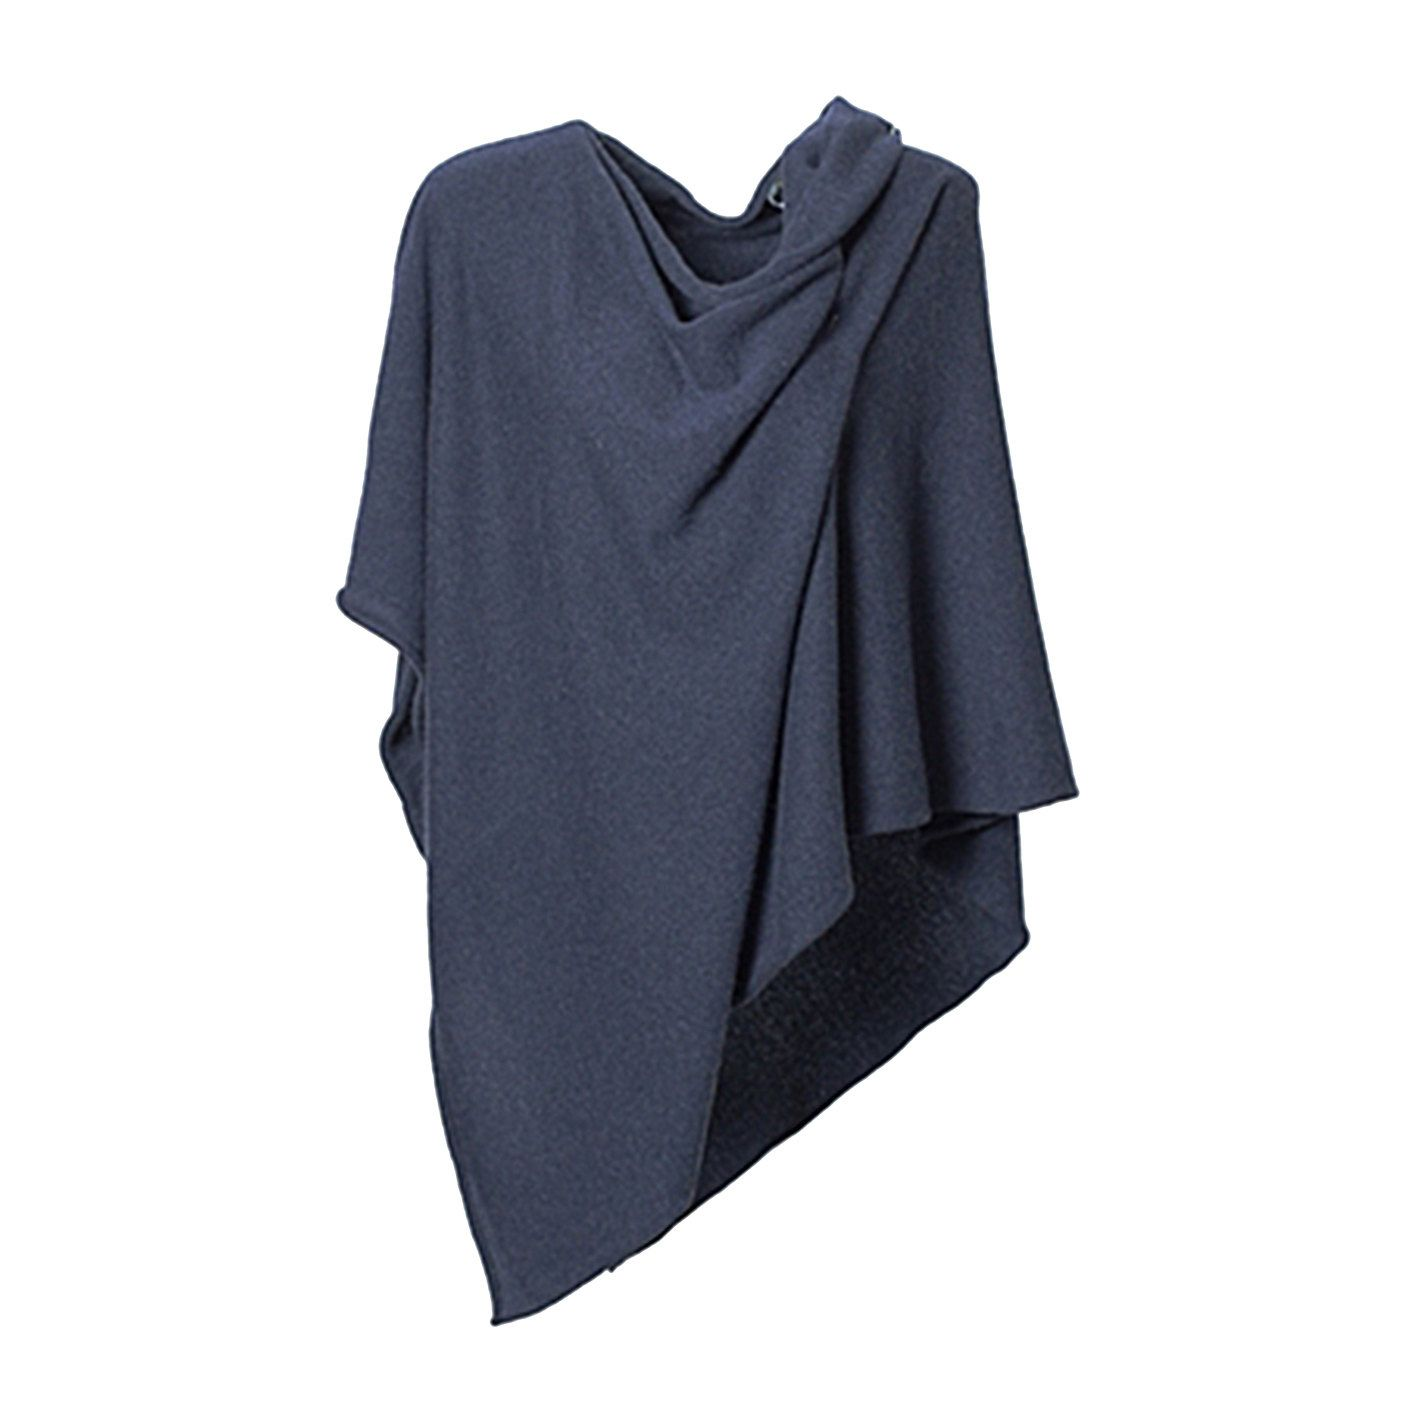 ANNA KRISTINE CASHMERE - Luxurious Denim Blue Pure Cashmere Poncho Topper by CashmereByAnnaK on Etsy https://www.etsy.com/listing/172975772/anna-kristine-cashmere-luxurious-denim